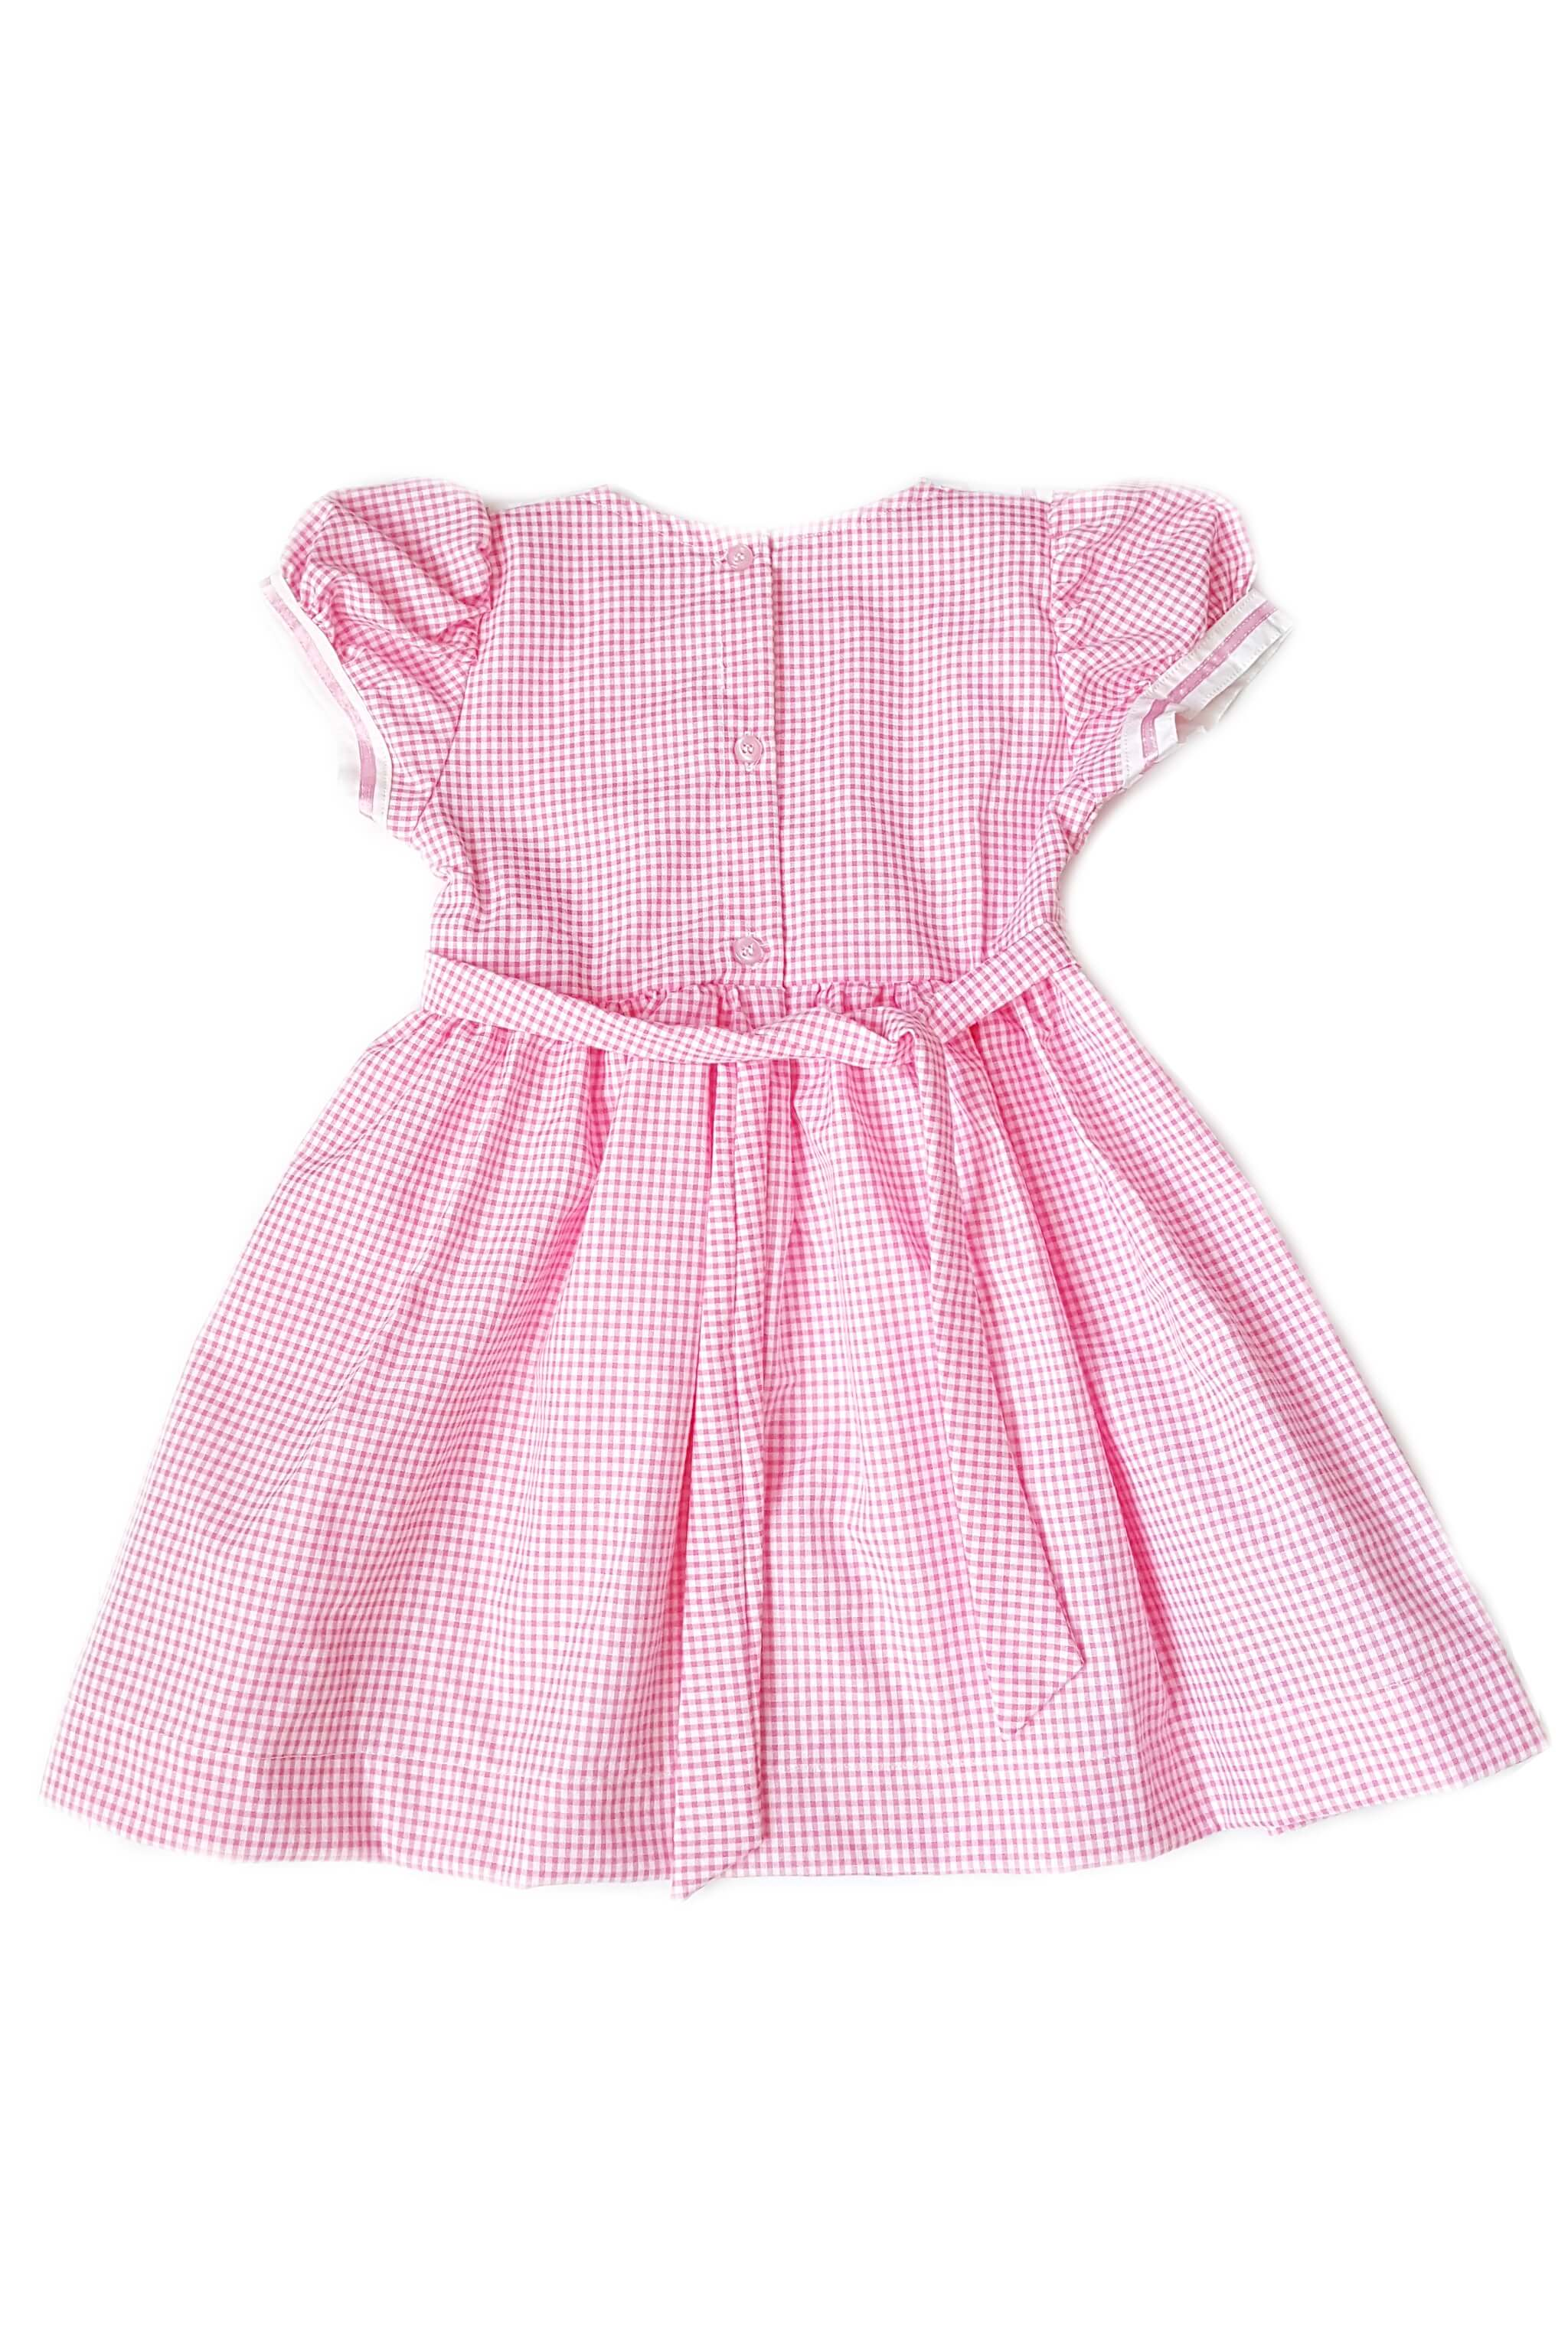 Back of pink gingham dress with white sailor collar, pink satin trim and hand-smocked bodice with button back and sash for little girls